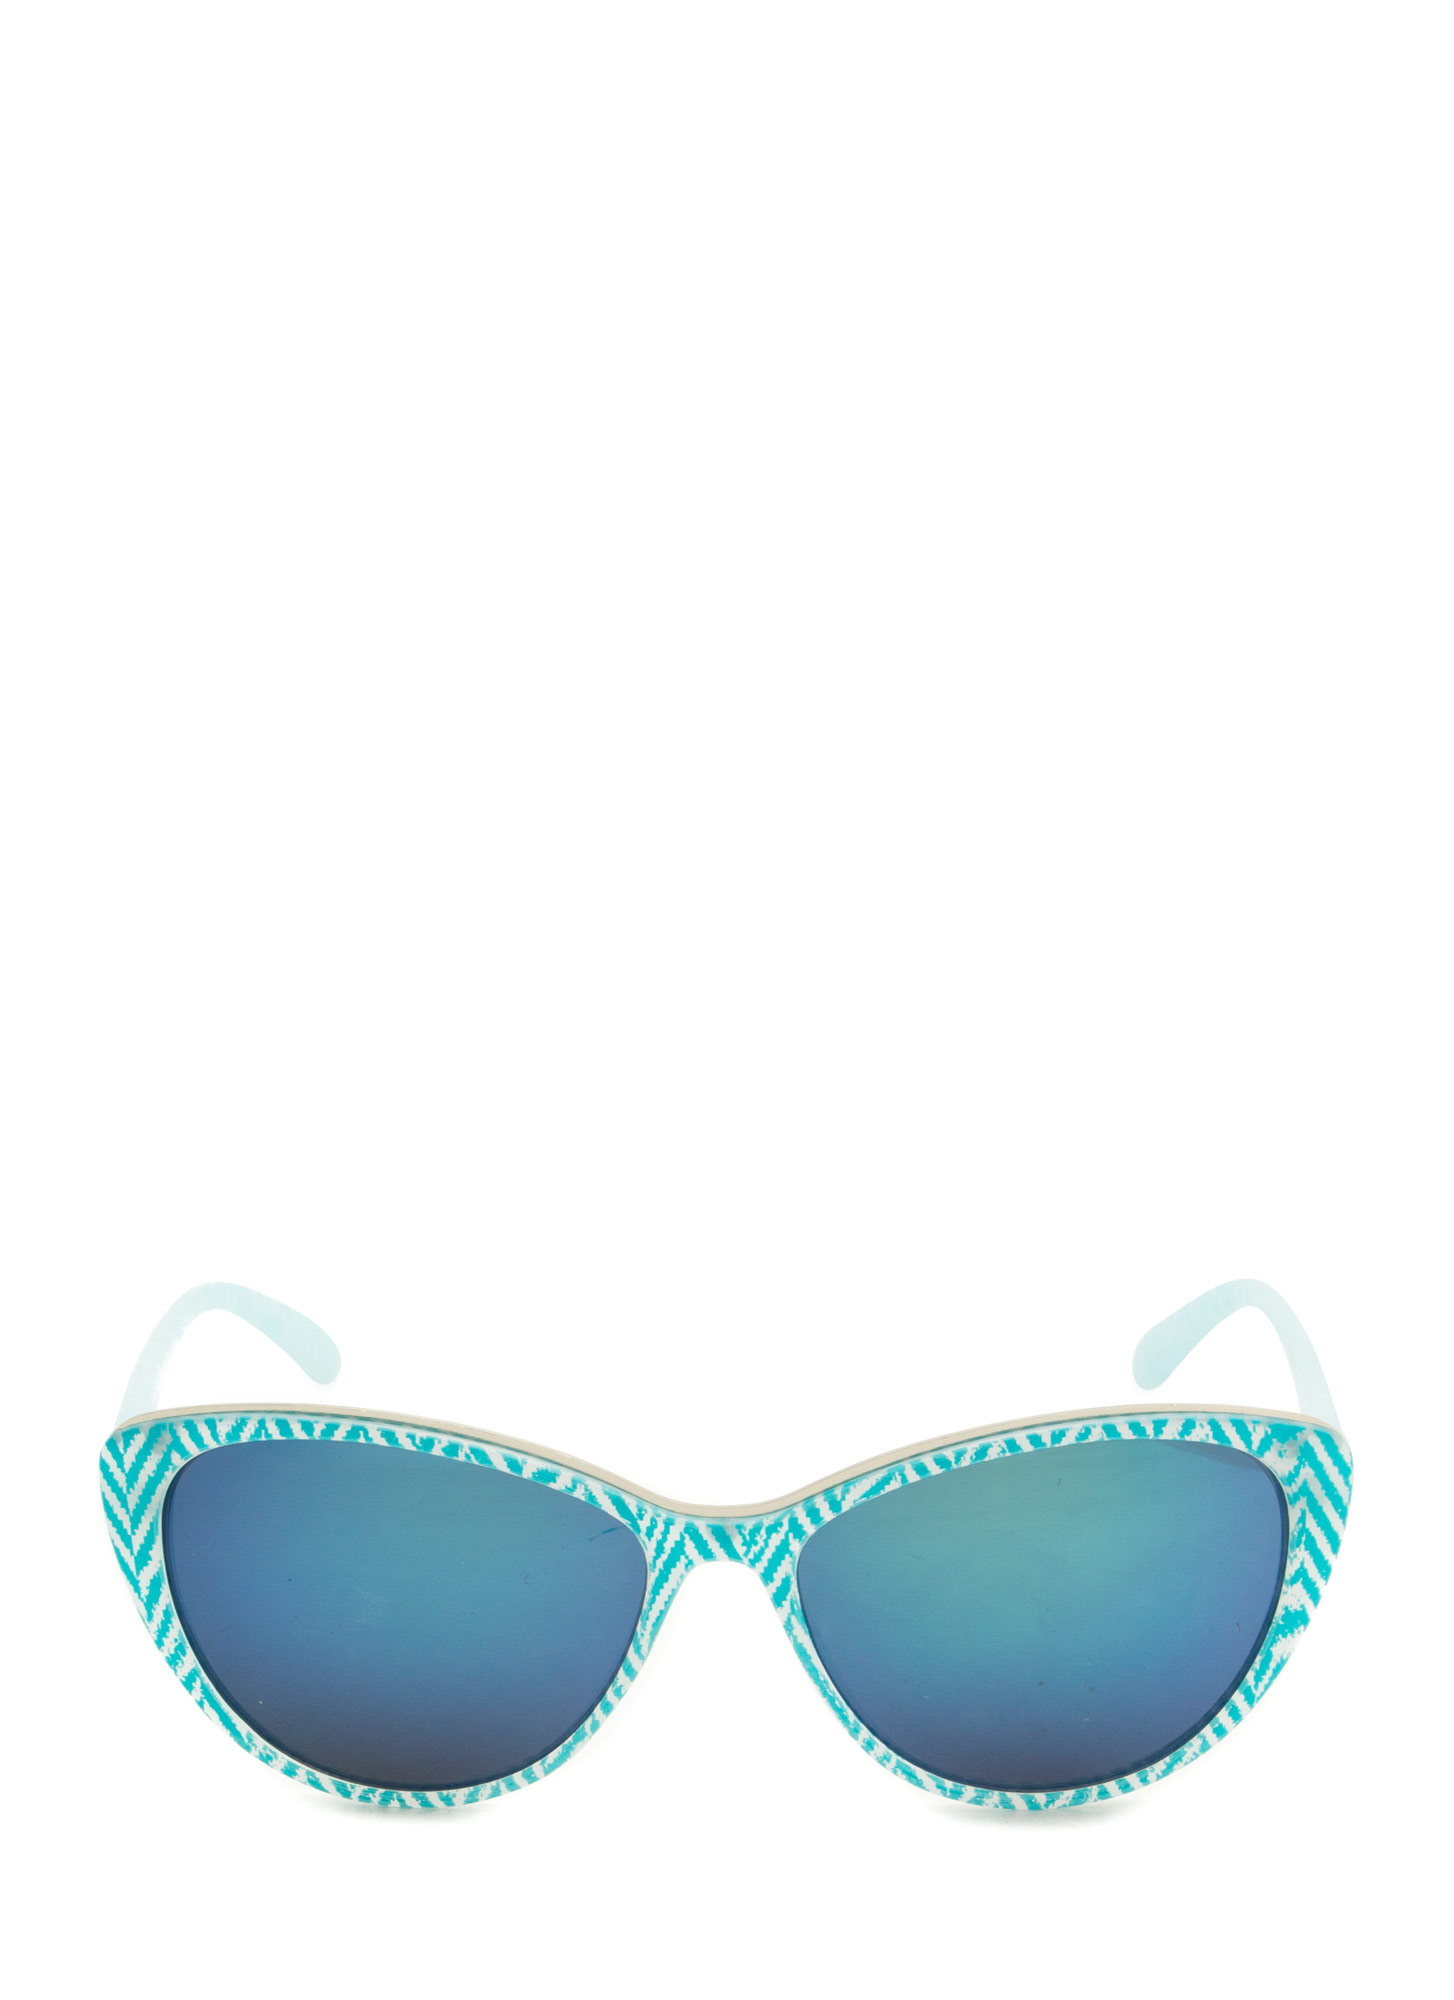 Pattern Play Reflective Sunglasses BLUE